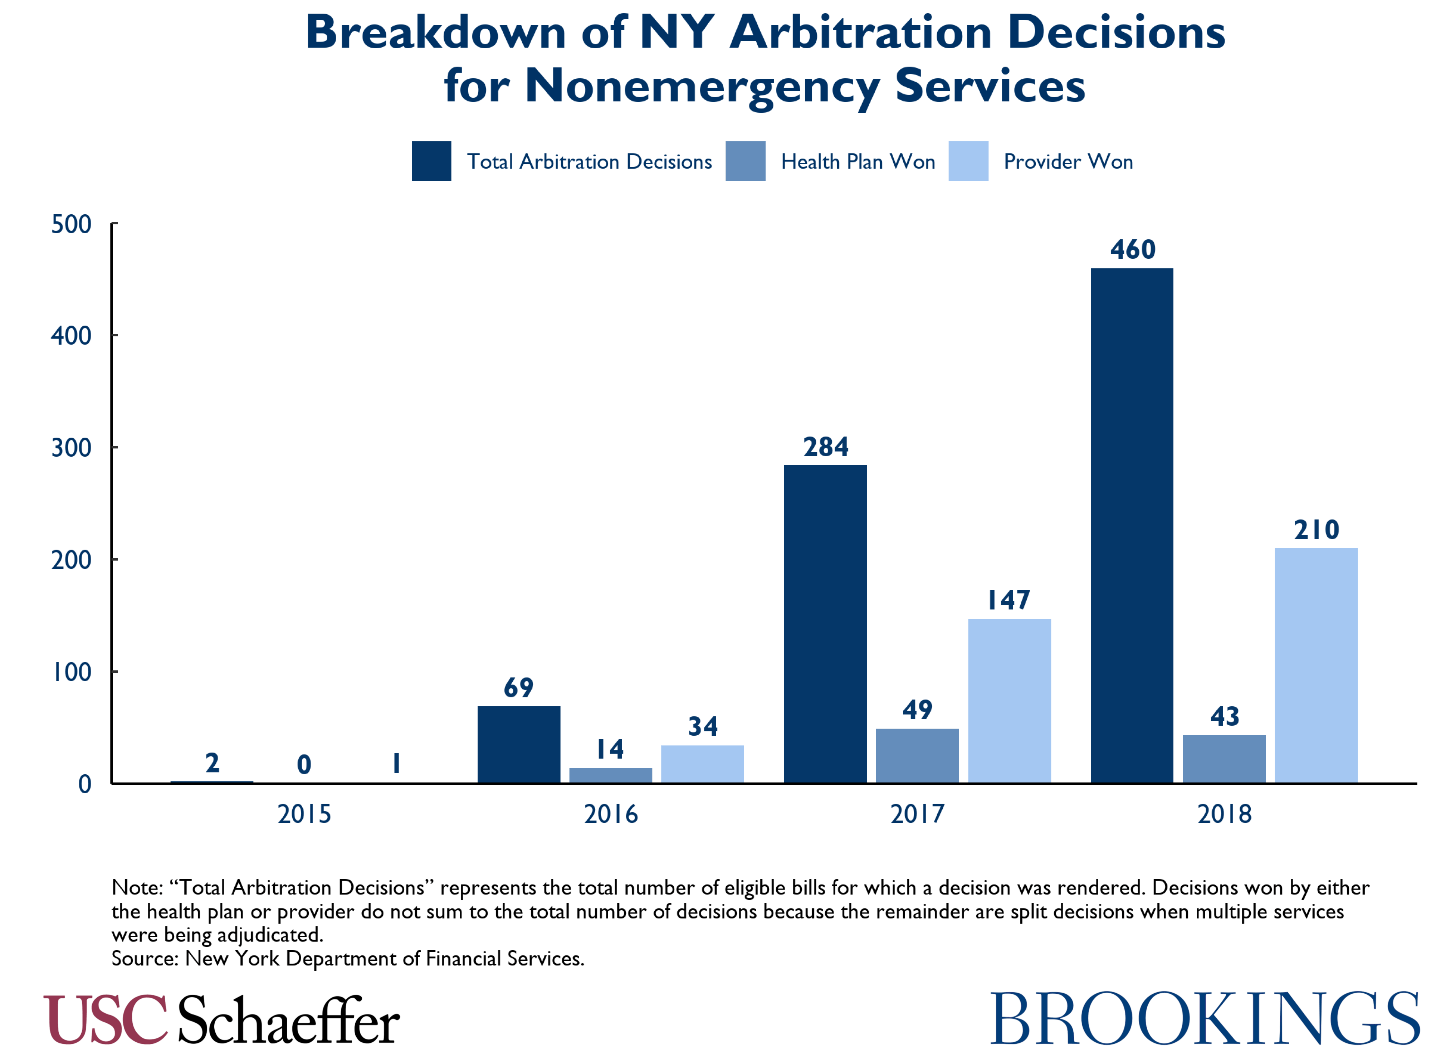 Breakdown of NY arbitration decisions for nonemergency services